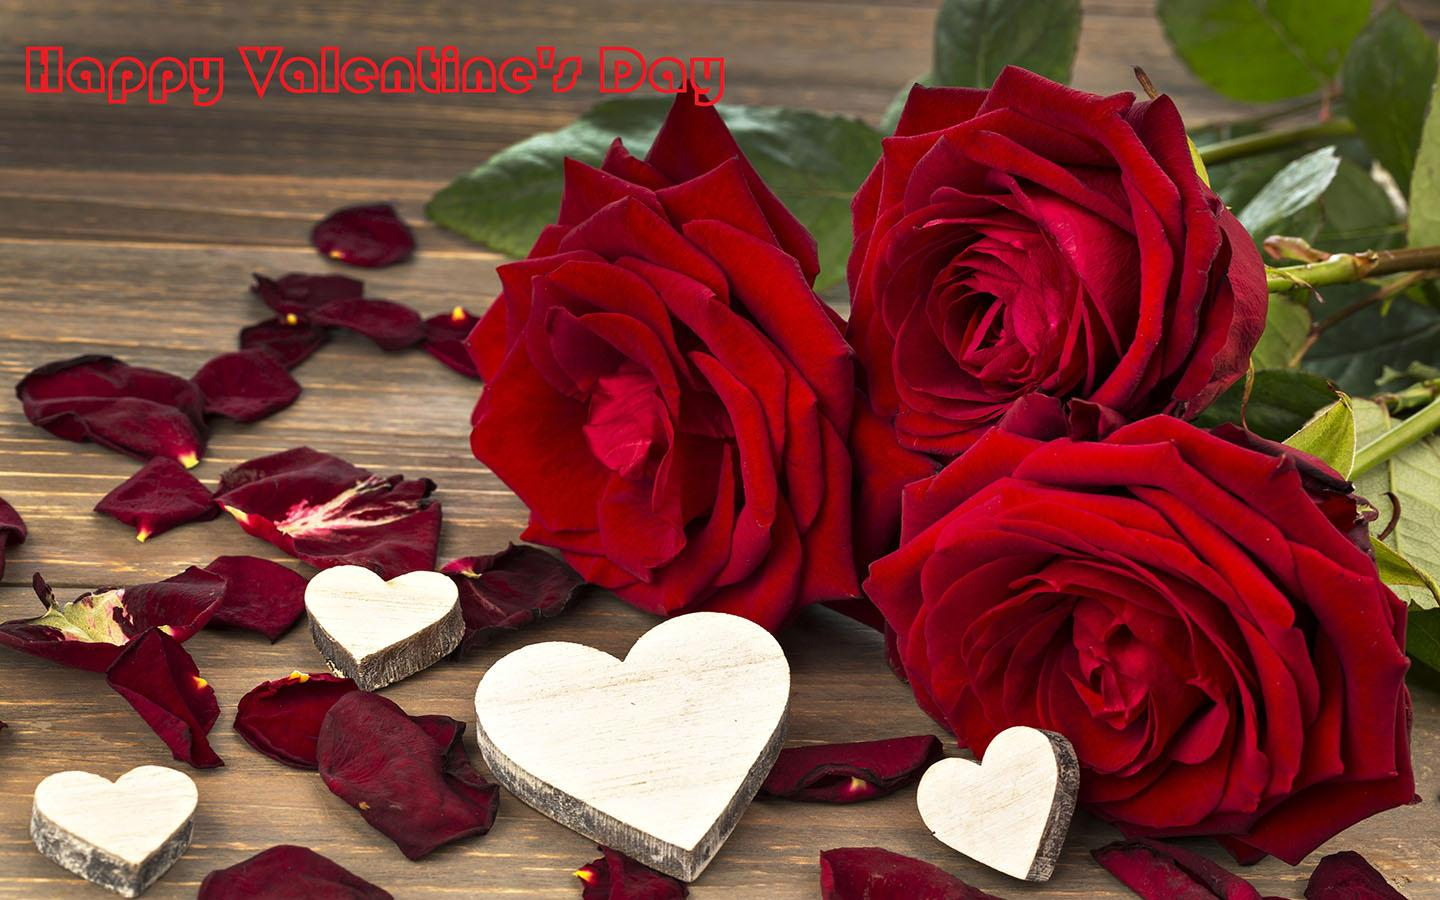 Valentines Day Romantic Red Roses HD Wallpapers Free